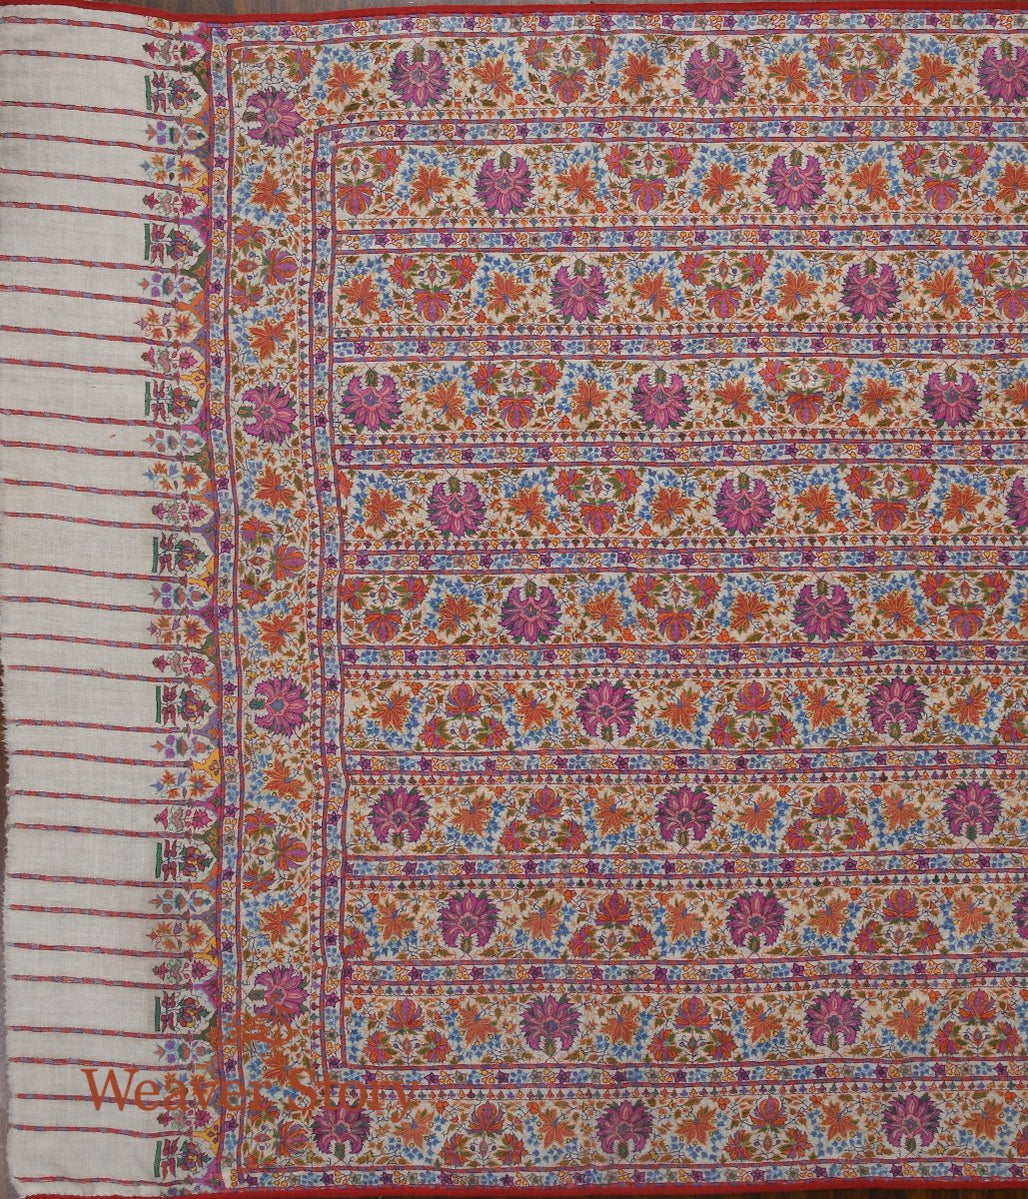 Off White Shawl with Striped Floral Pattern with Kalamkari